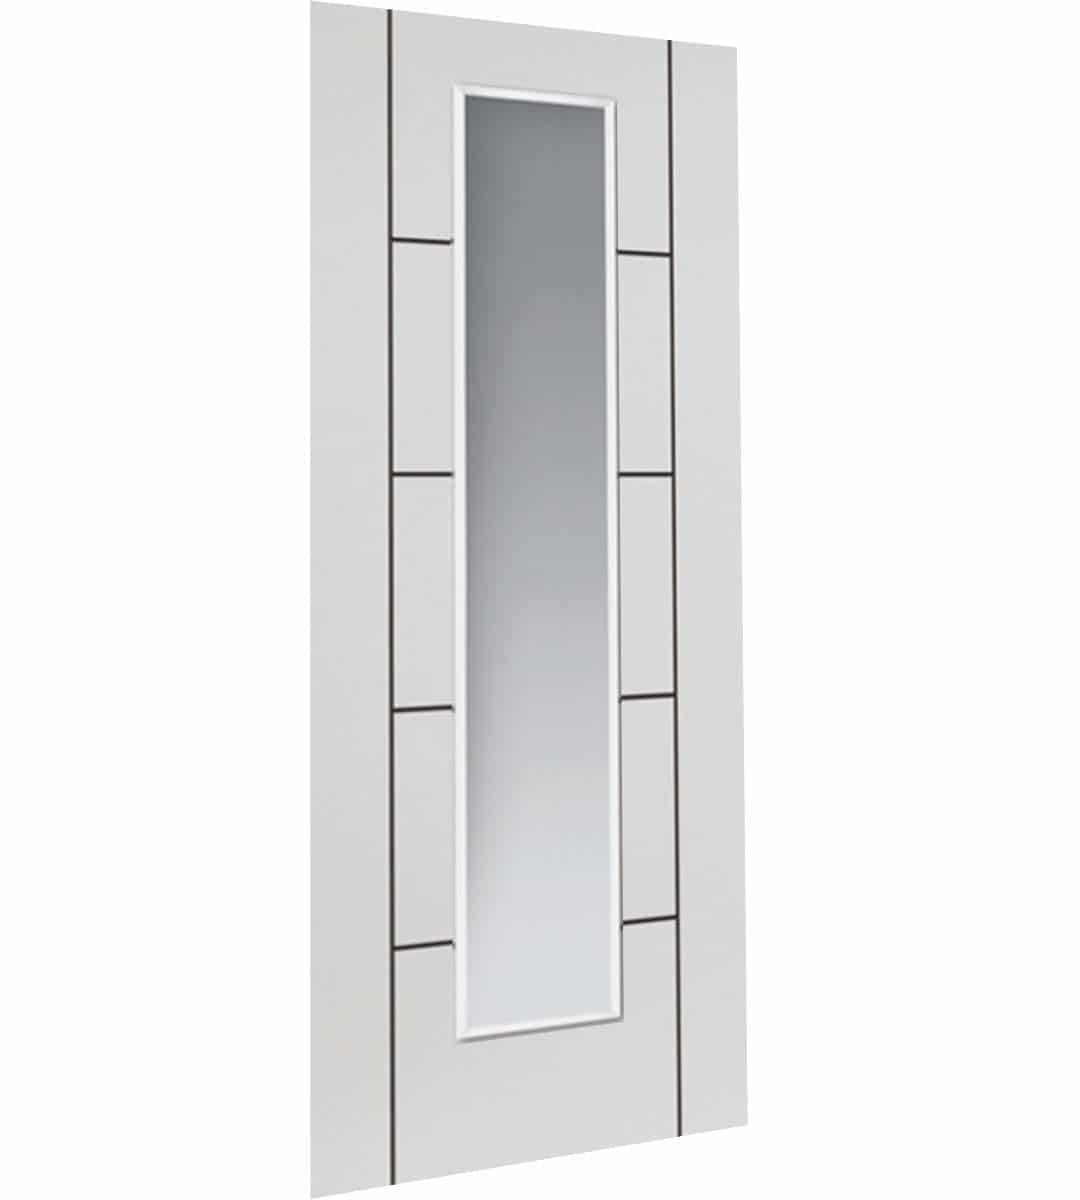 Eco linea white internal glazed door shawfield doors eco linea white glazed interior door planetlyrics Images